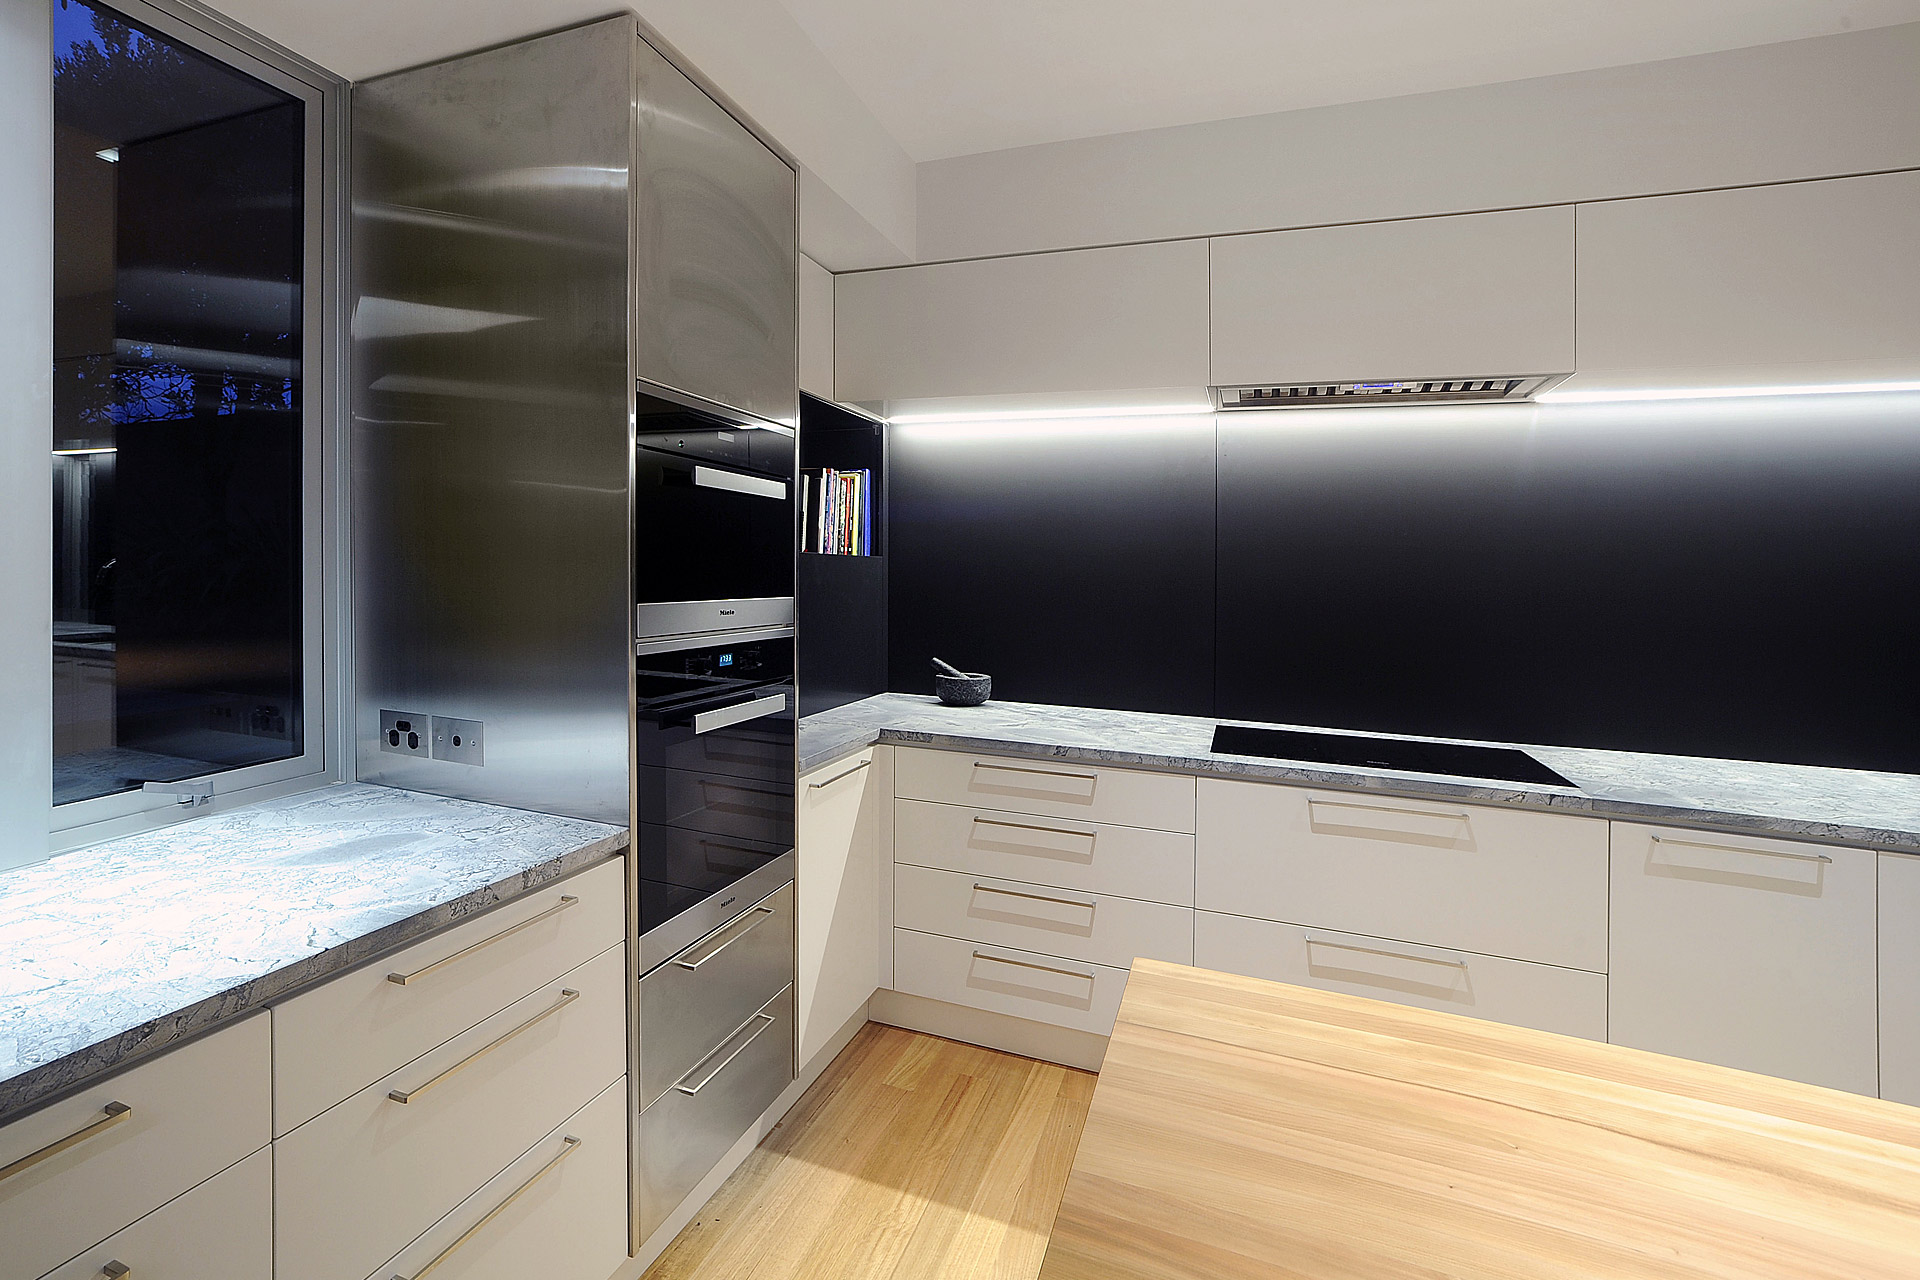 neo design auckland kitchen renovation timber stainless steel save